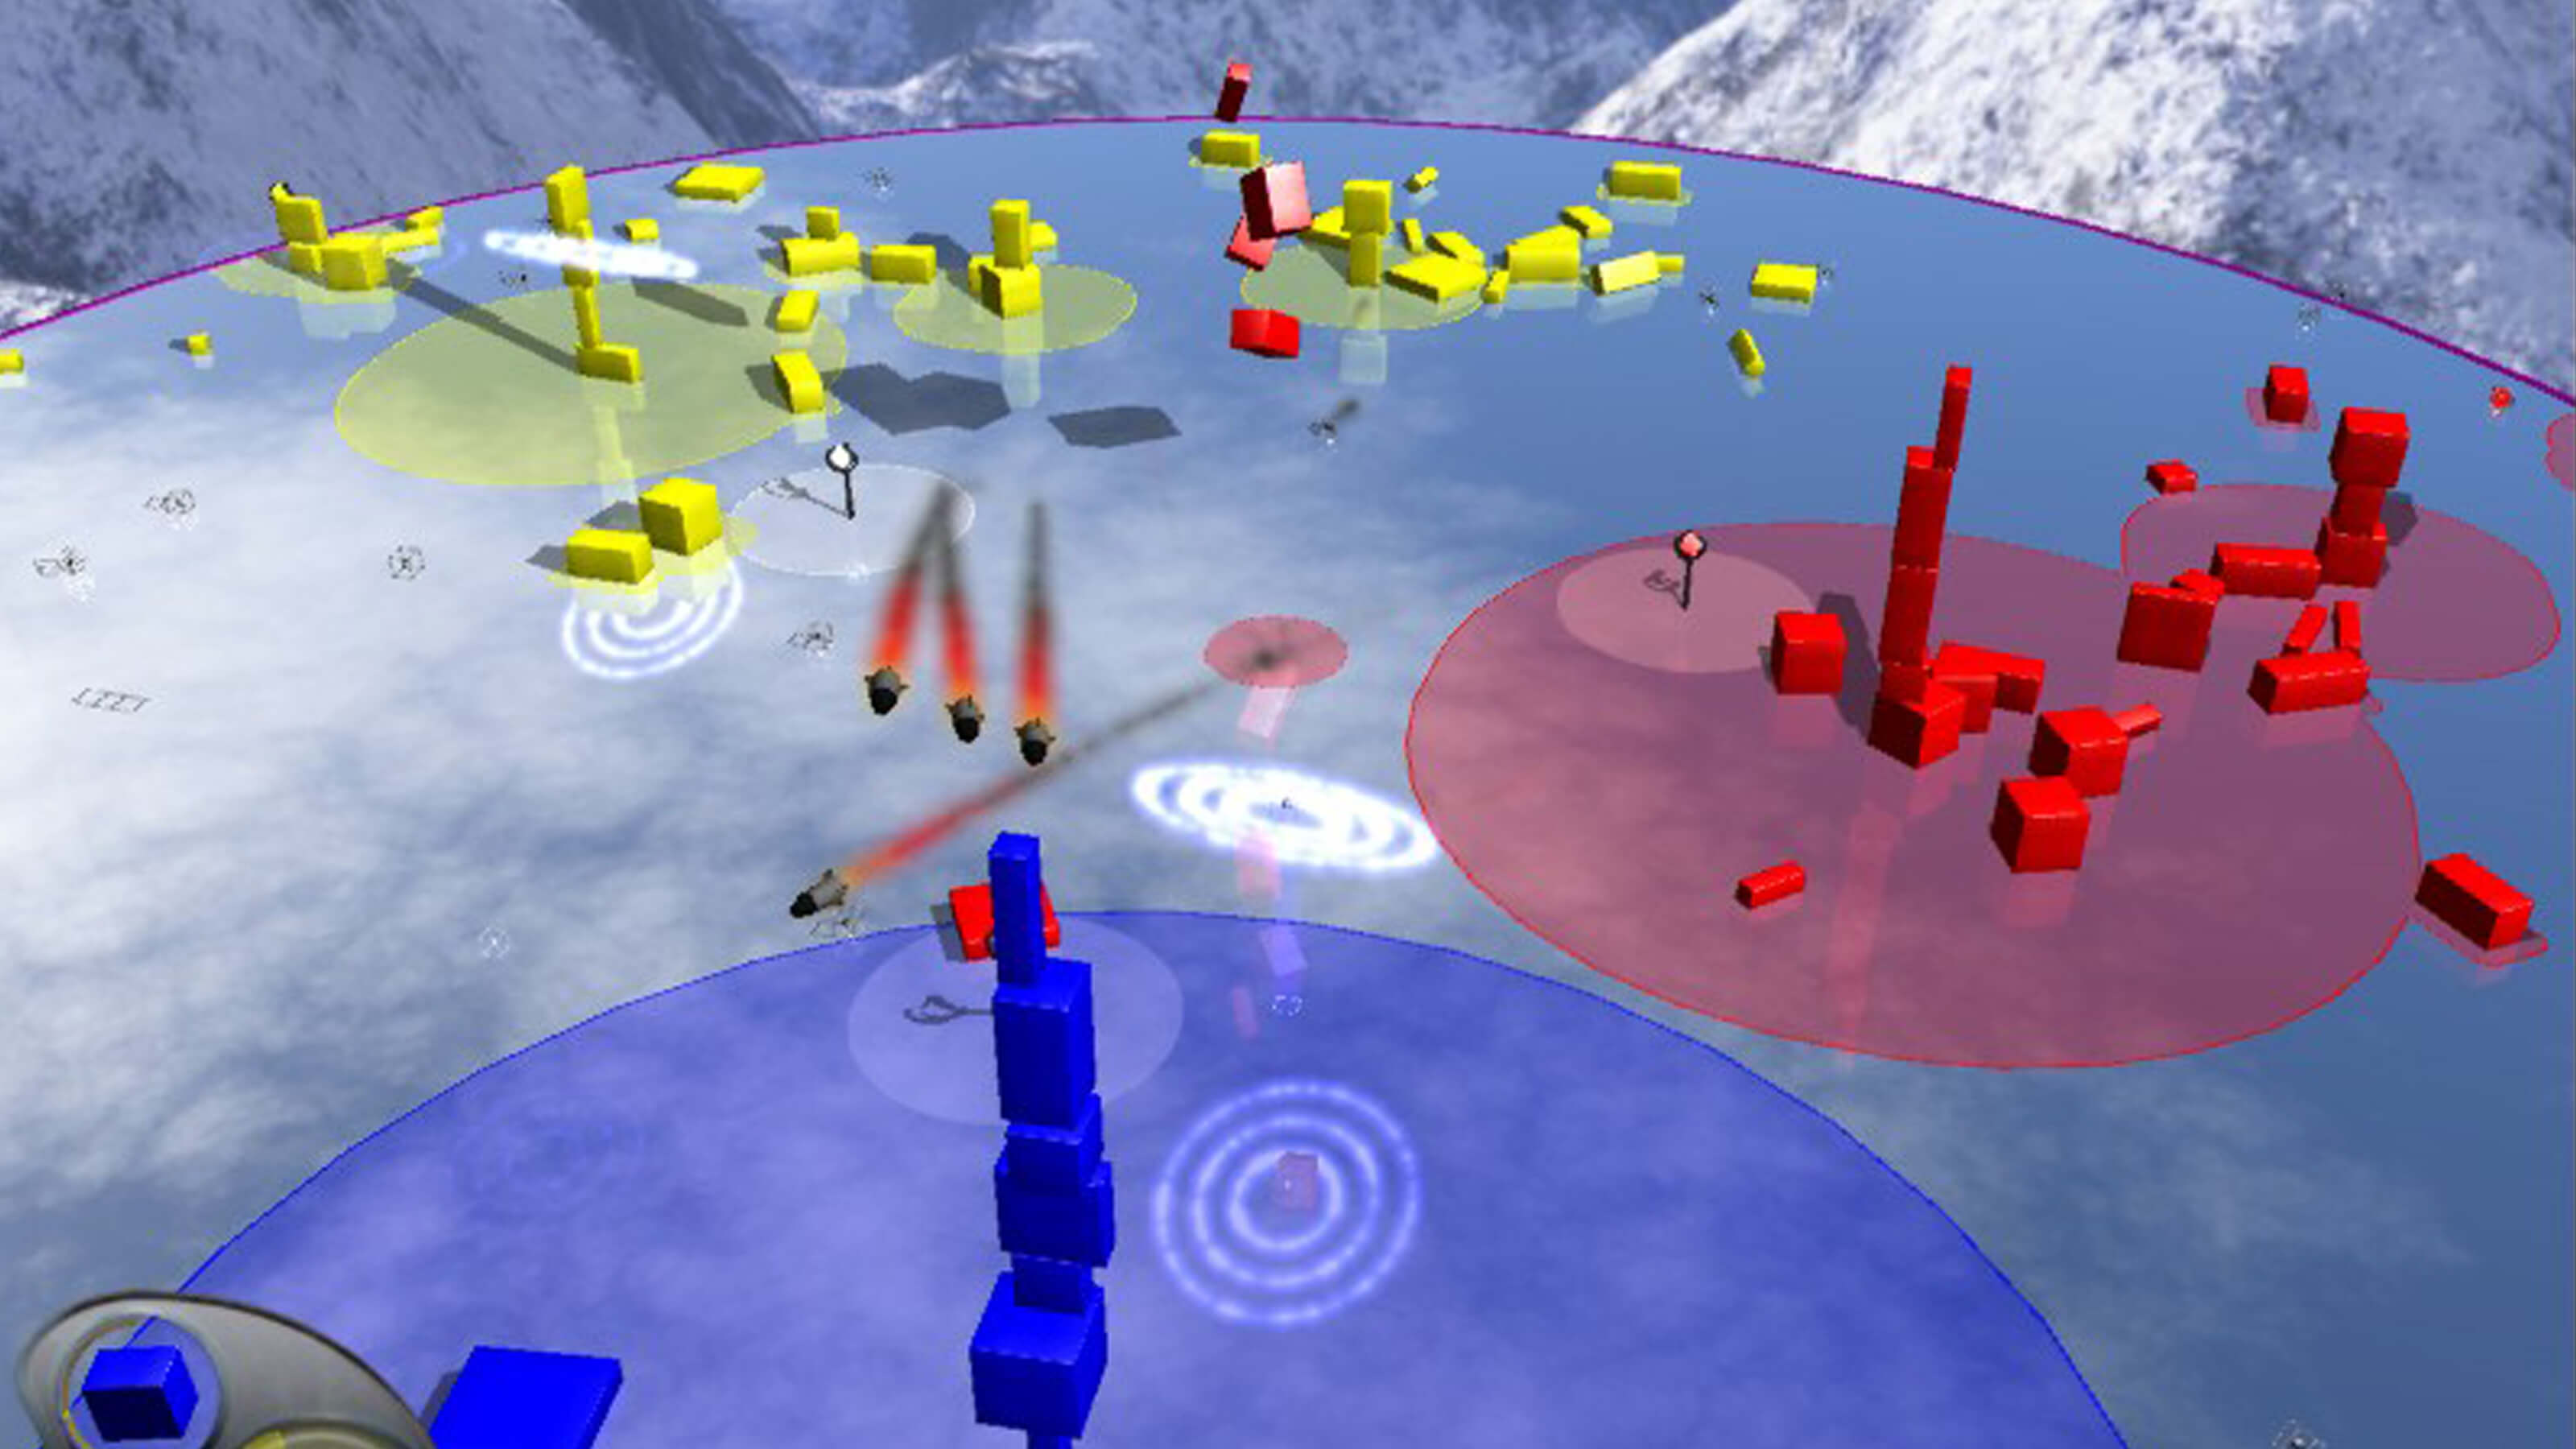 Missiles fly towards a blue stack of shapes as a red and yellow stack grows in the distance.